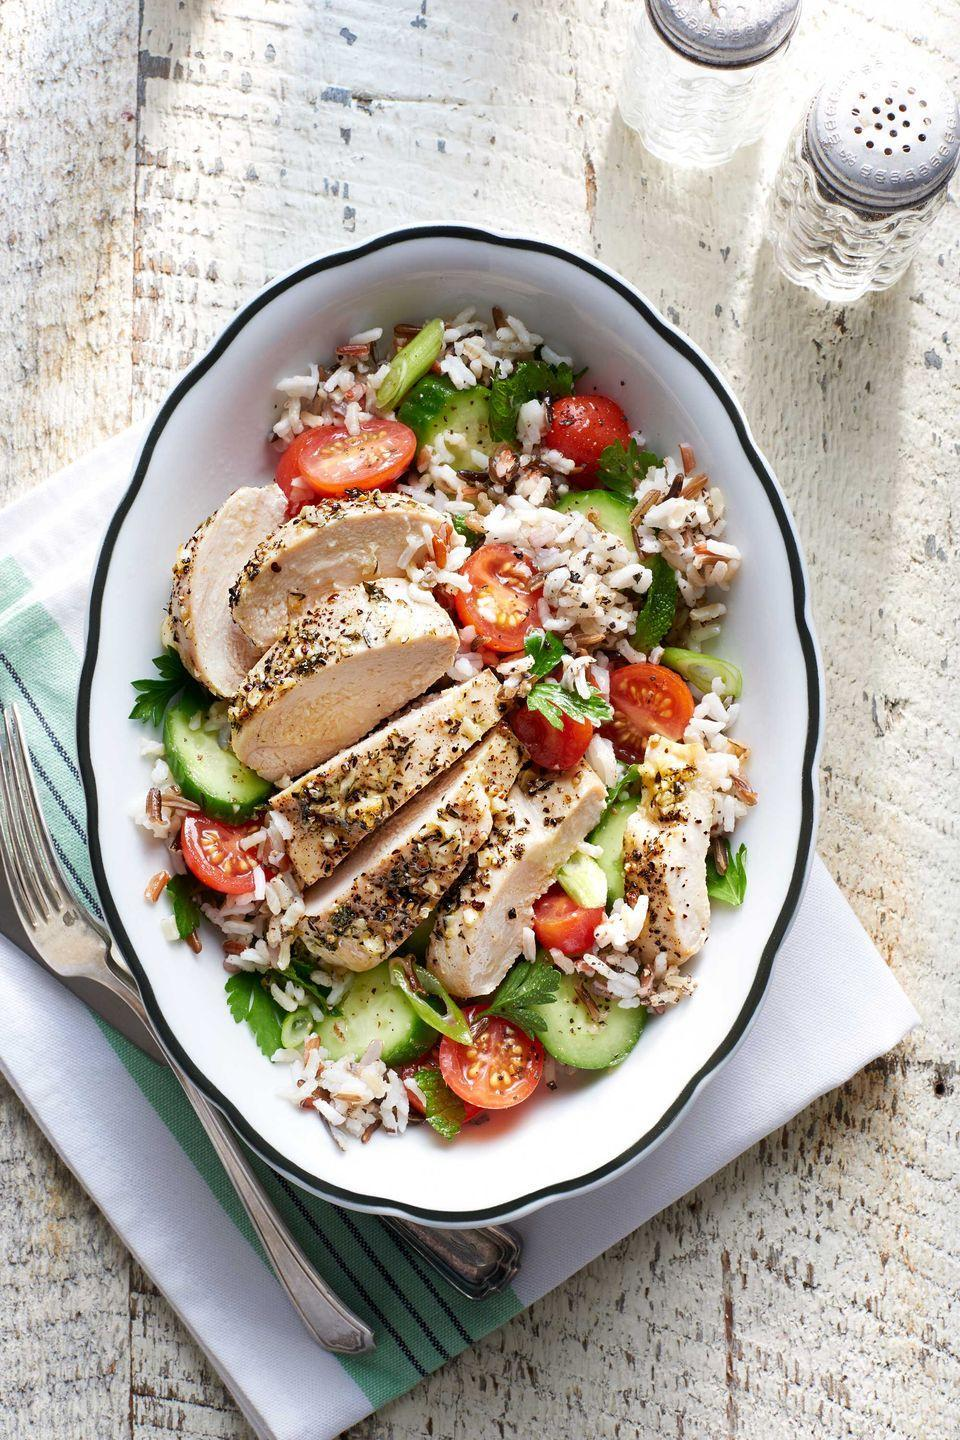 "<p>This chicken dish is a light and healthy weeknight meal that's sure to please.</p><p><strong><a href=""https://www.countryliving.com/food-drinks/recipes/a275/greek-chicken-tomato-rice-salad-recipe-clx0315/"" rel=""nofollow noopener"" target=""_blank"" data-ylk=""slk:Get the recipe."" class=""link rapid-noclick-resp"">Get the recipe.</a></strong></p>"